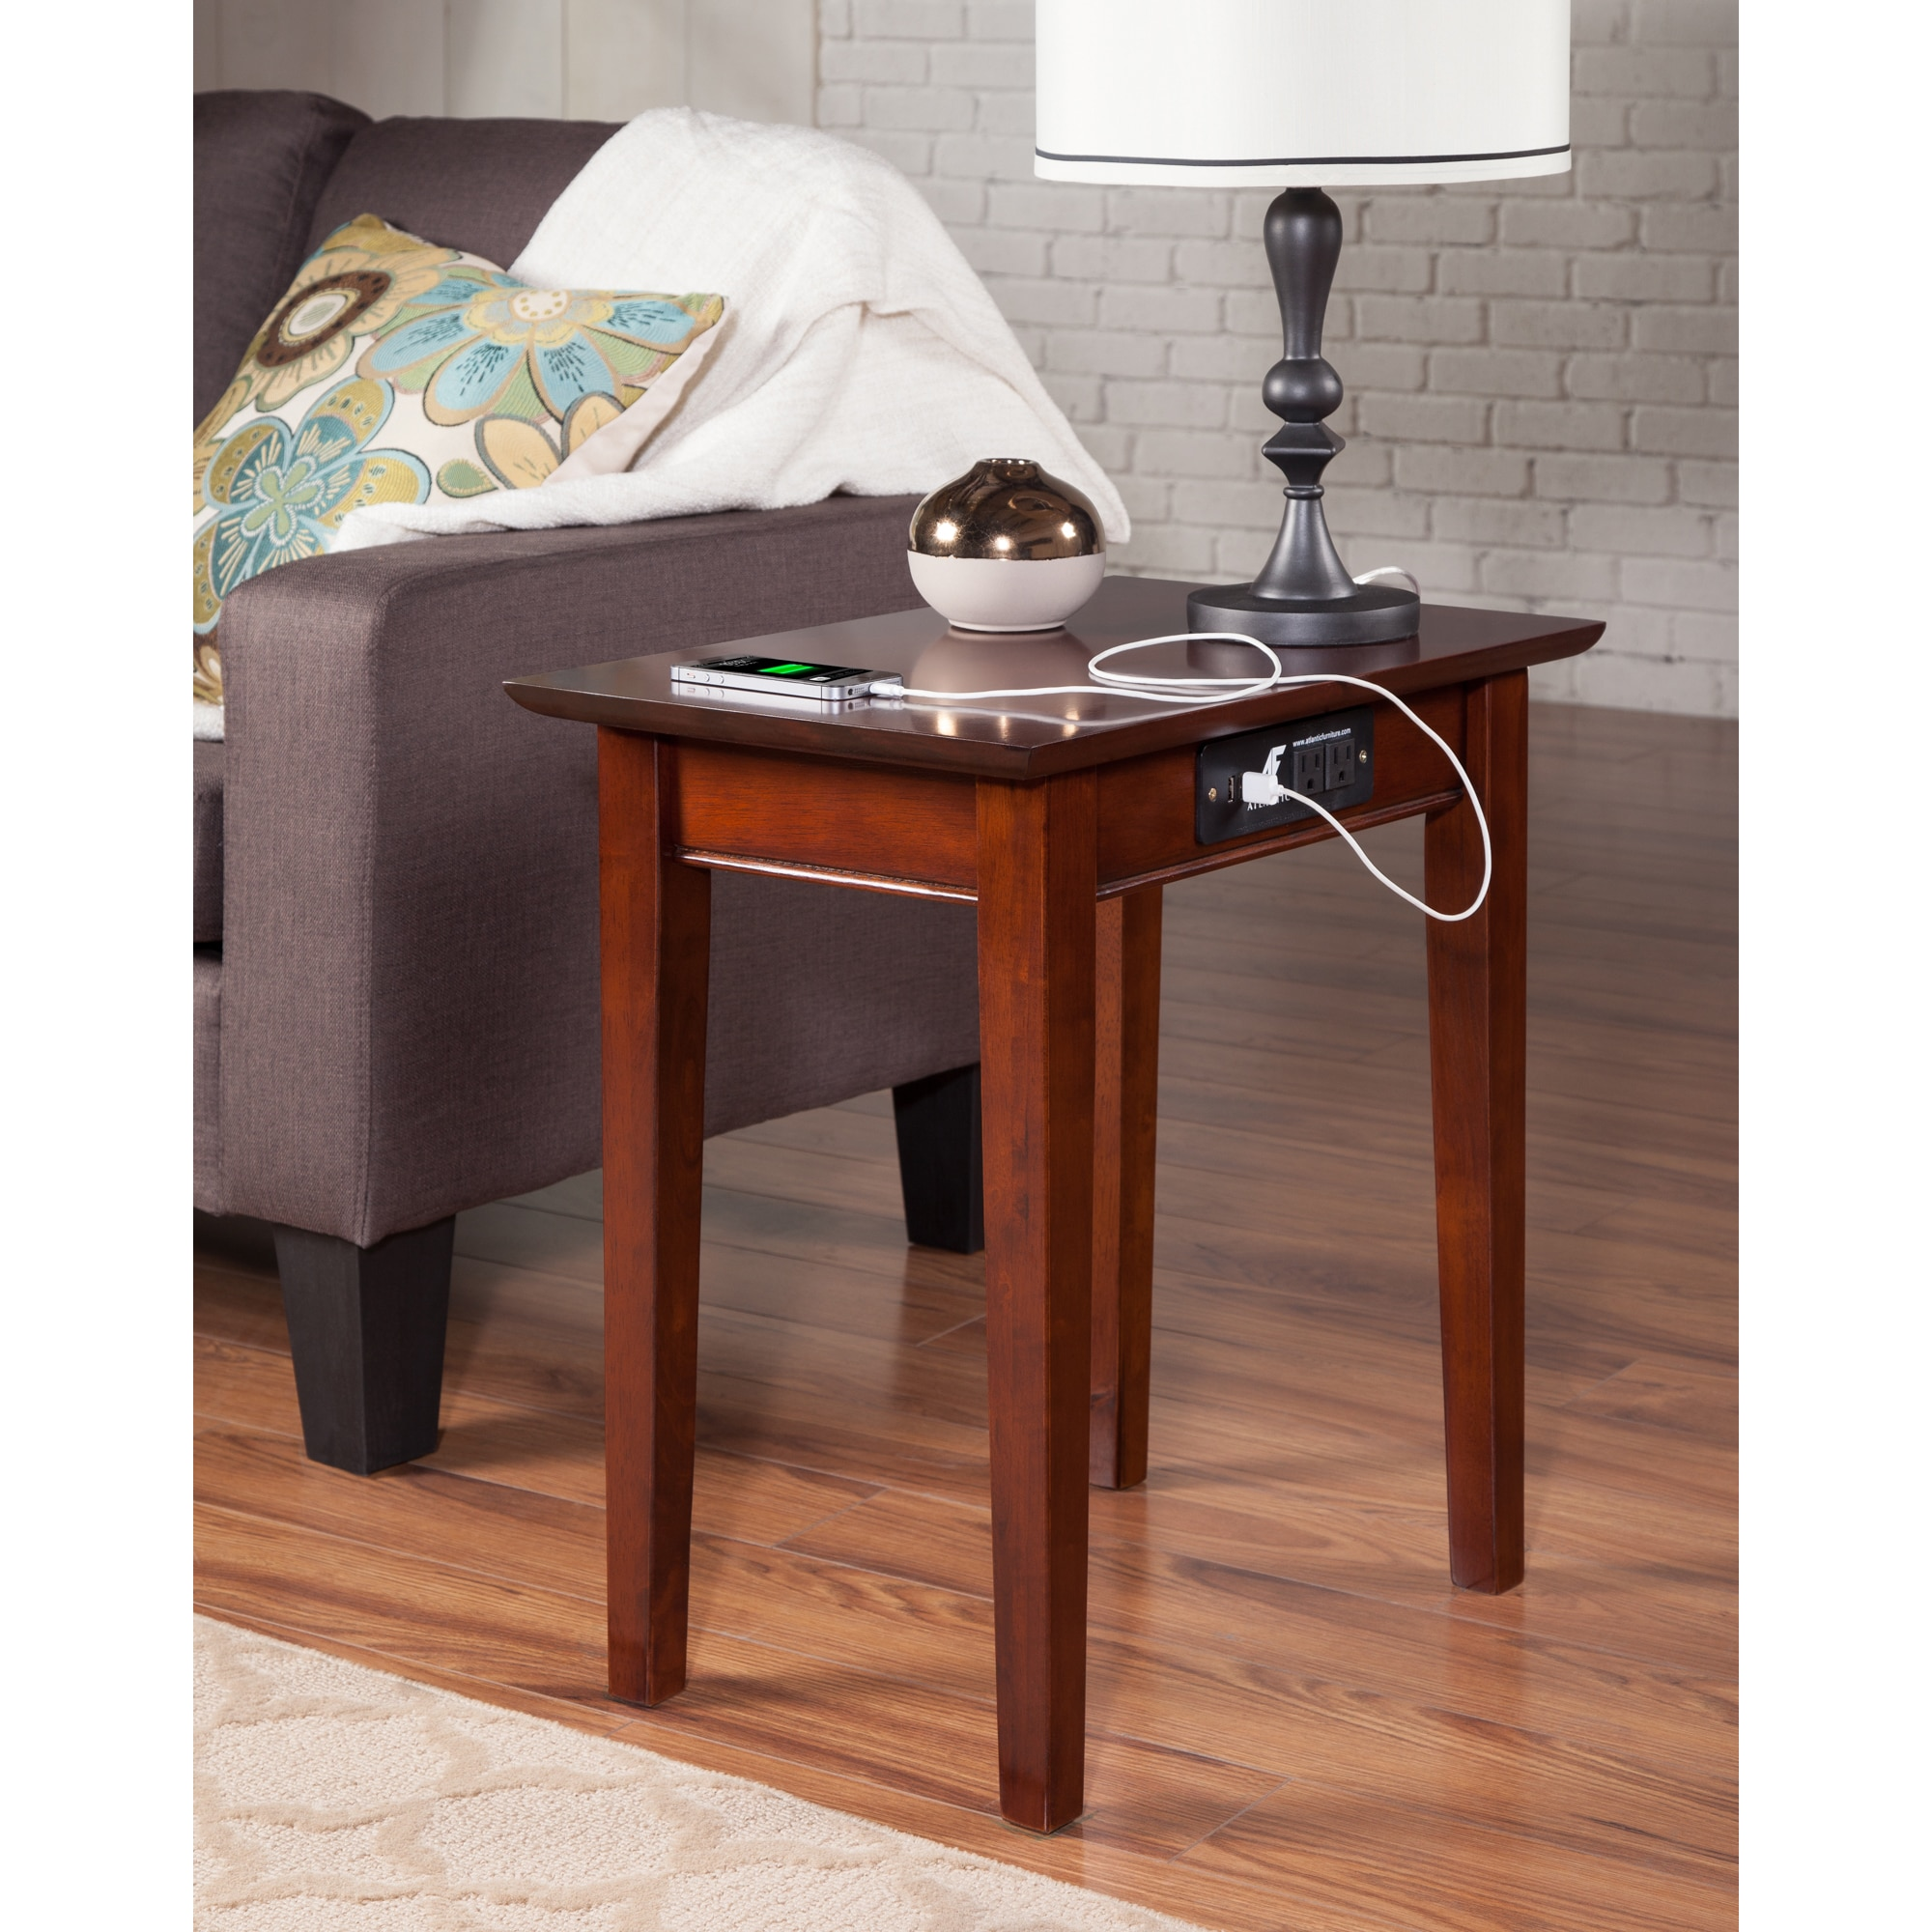 Shaker Chair Side Table With Charging Station In Walnut